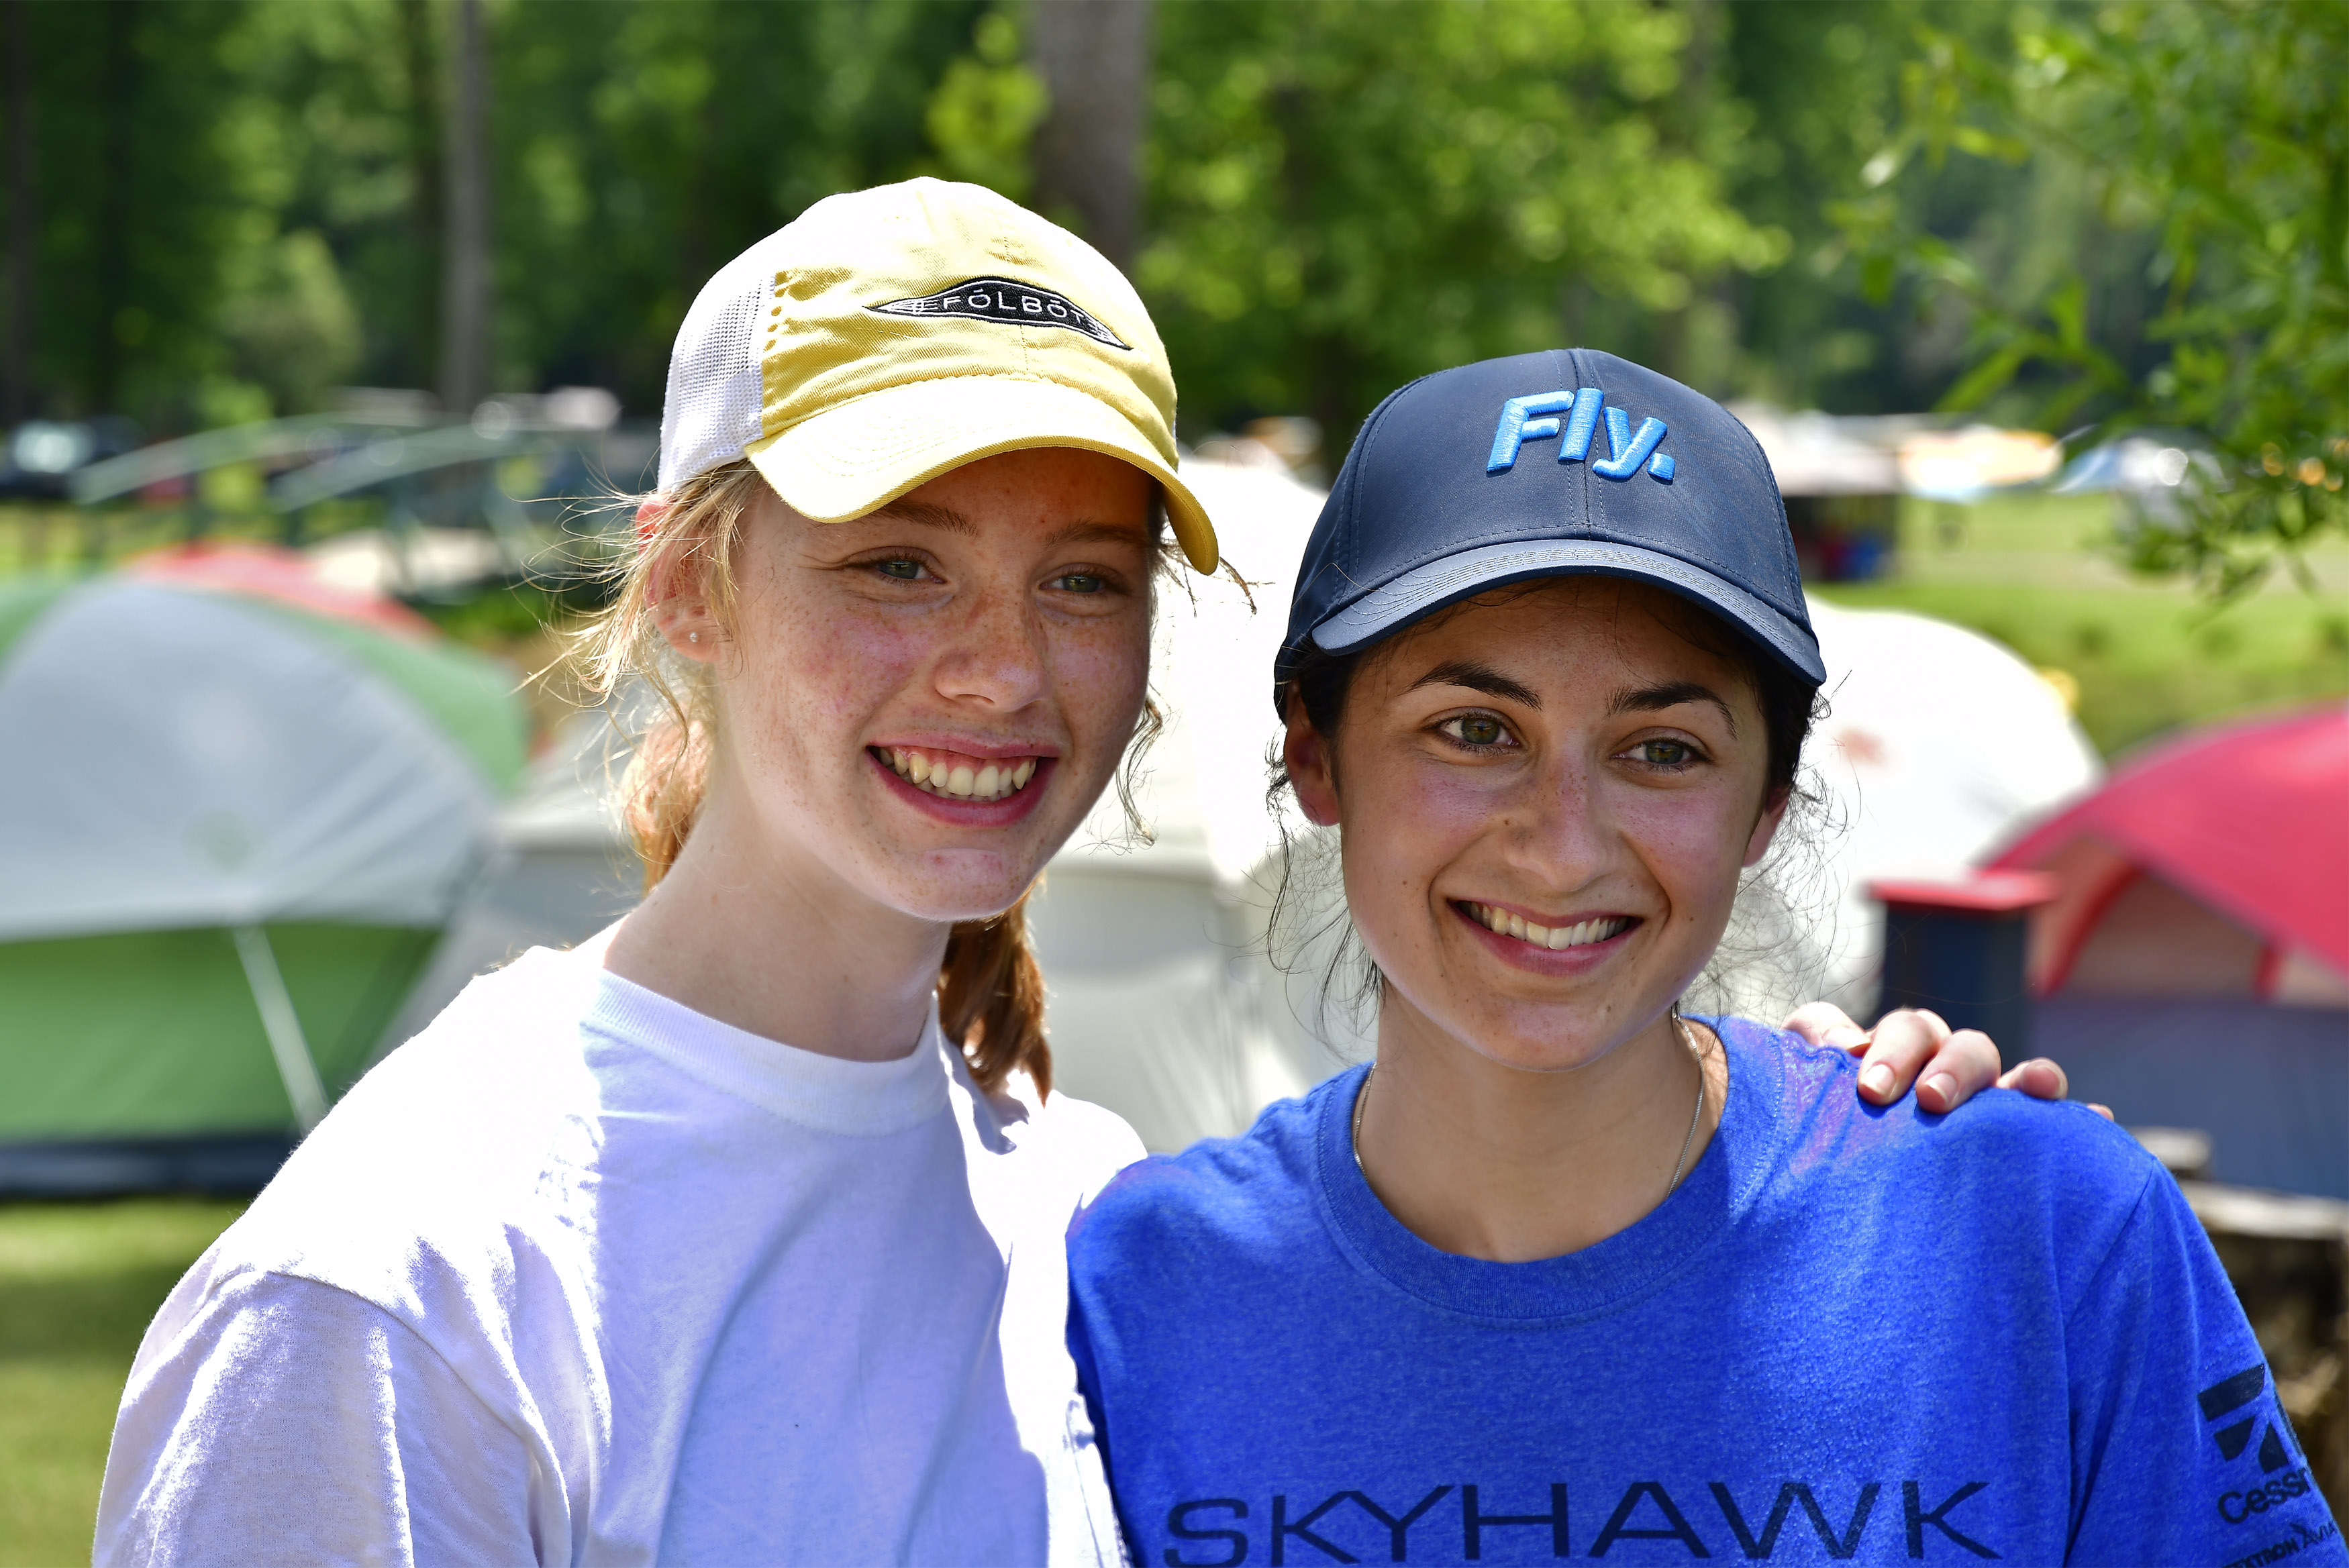 Rachel Enggasser and Malena Modirzadeh volunteered during the Young Aviators Fly-In at Triple Tree Aerodrome in Woodruff, South Carolina, June 8 to 10. Photo by David Tulis.